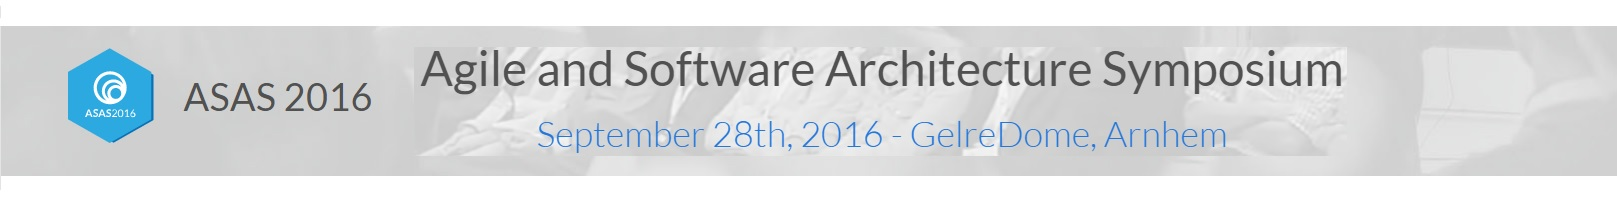 Agile and Software Architecture Symposium 2016